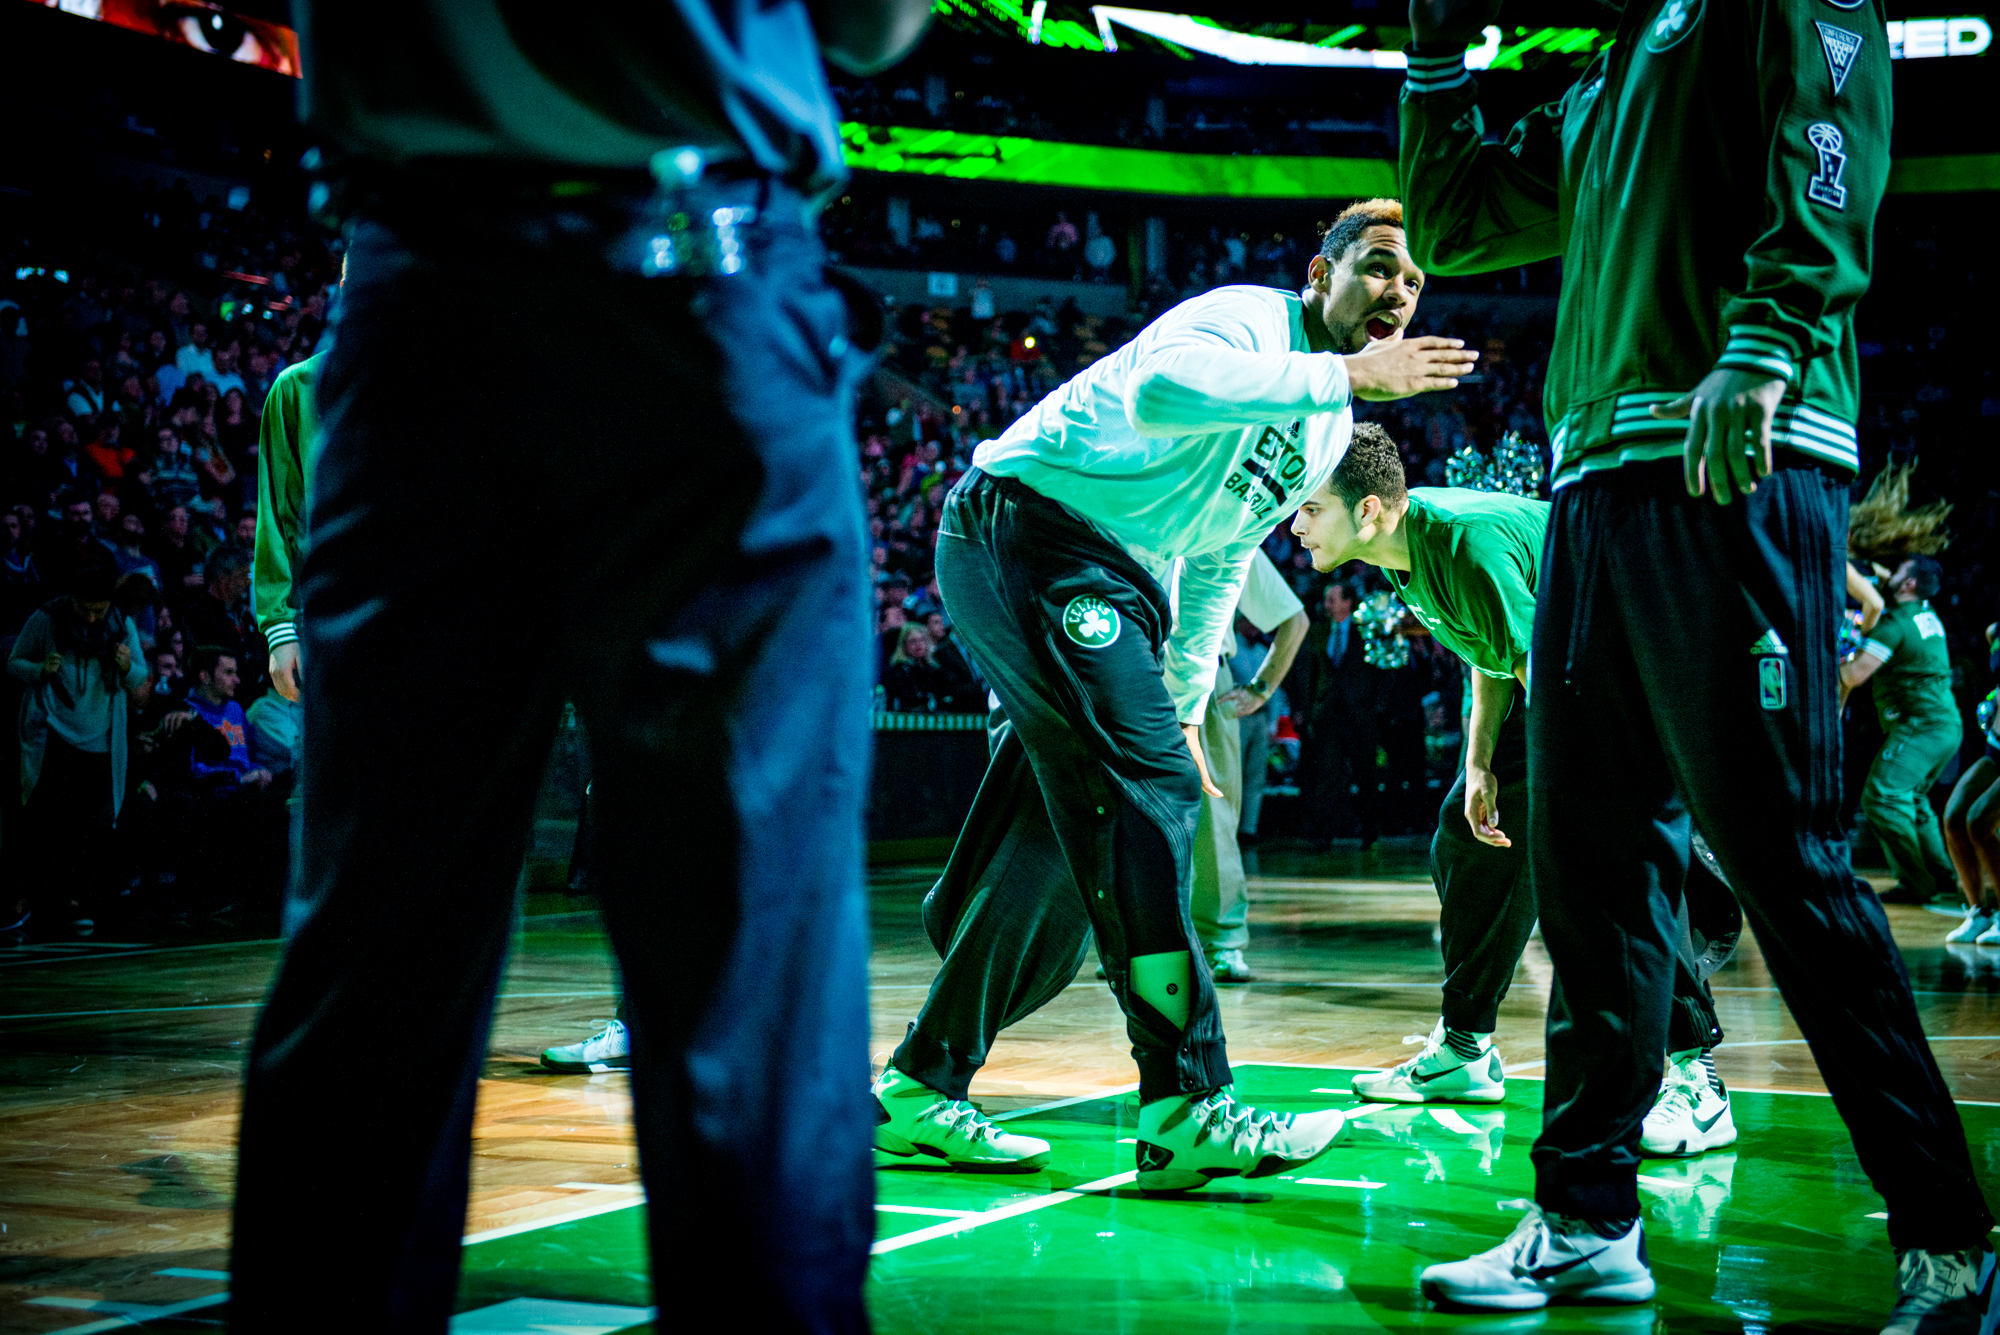 Celtics_Courtside_121615-568.jpg